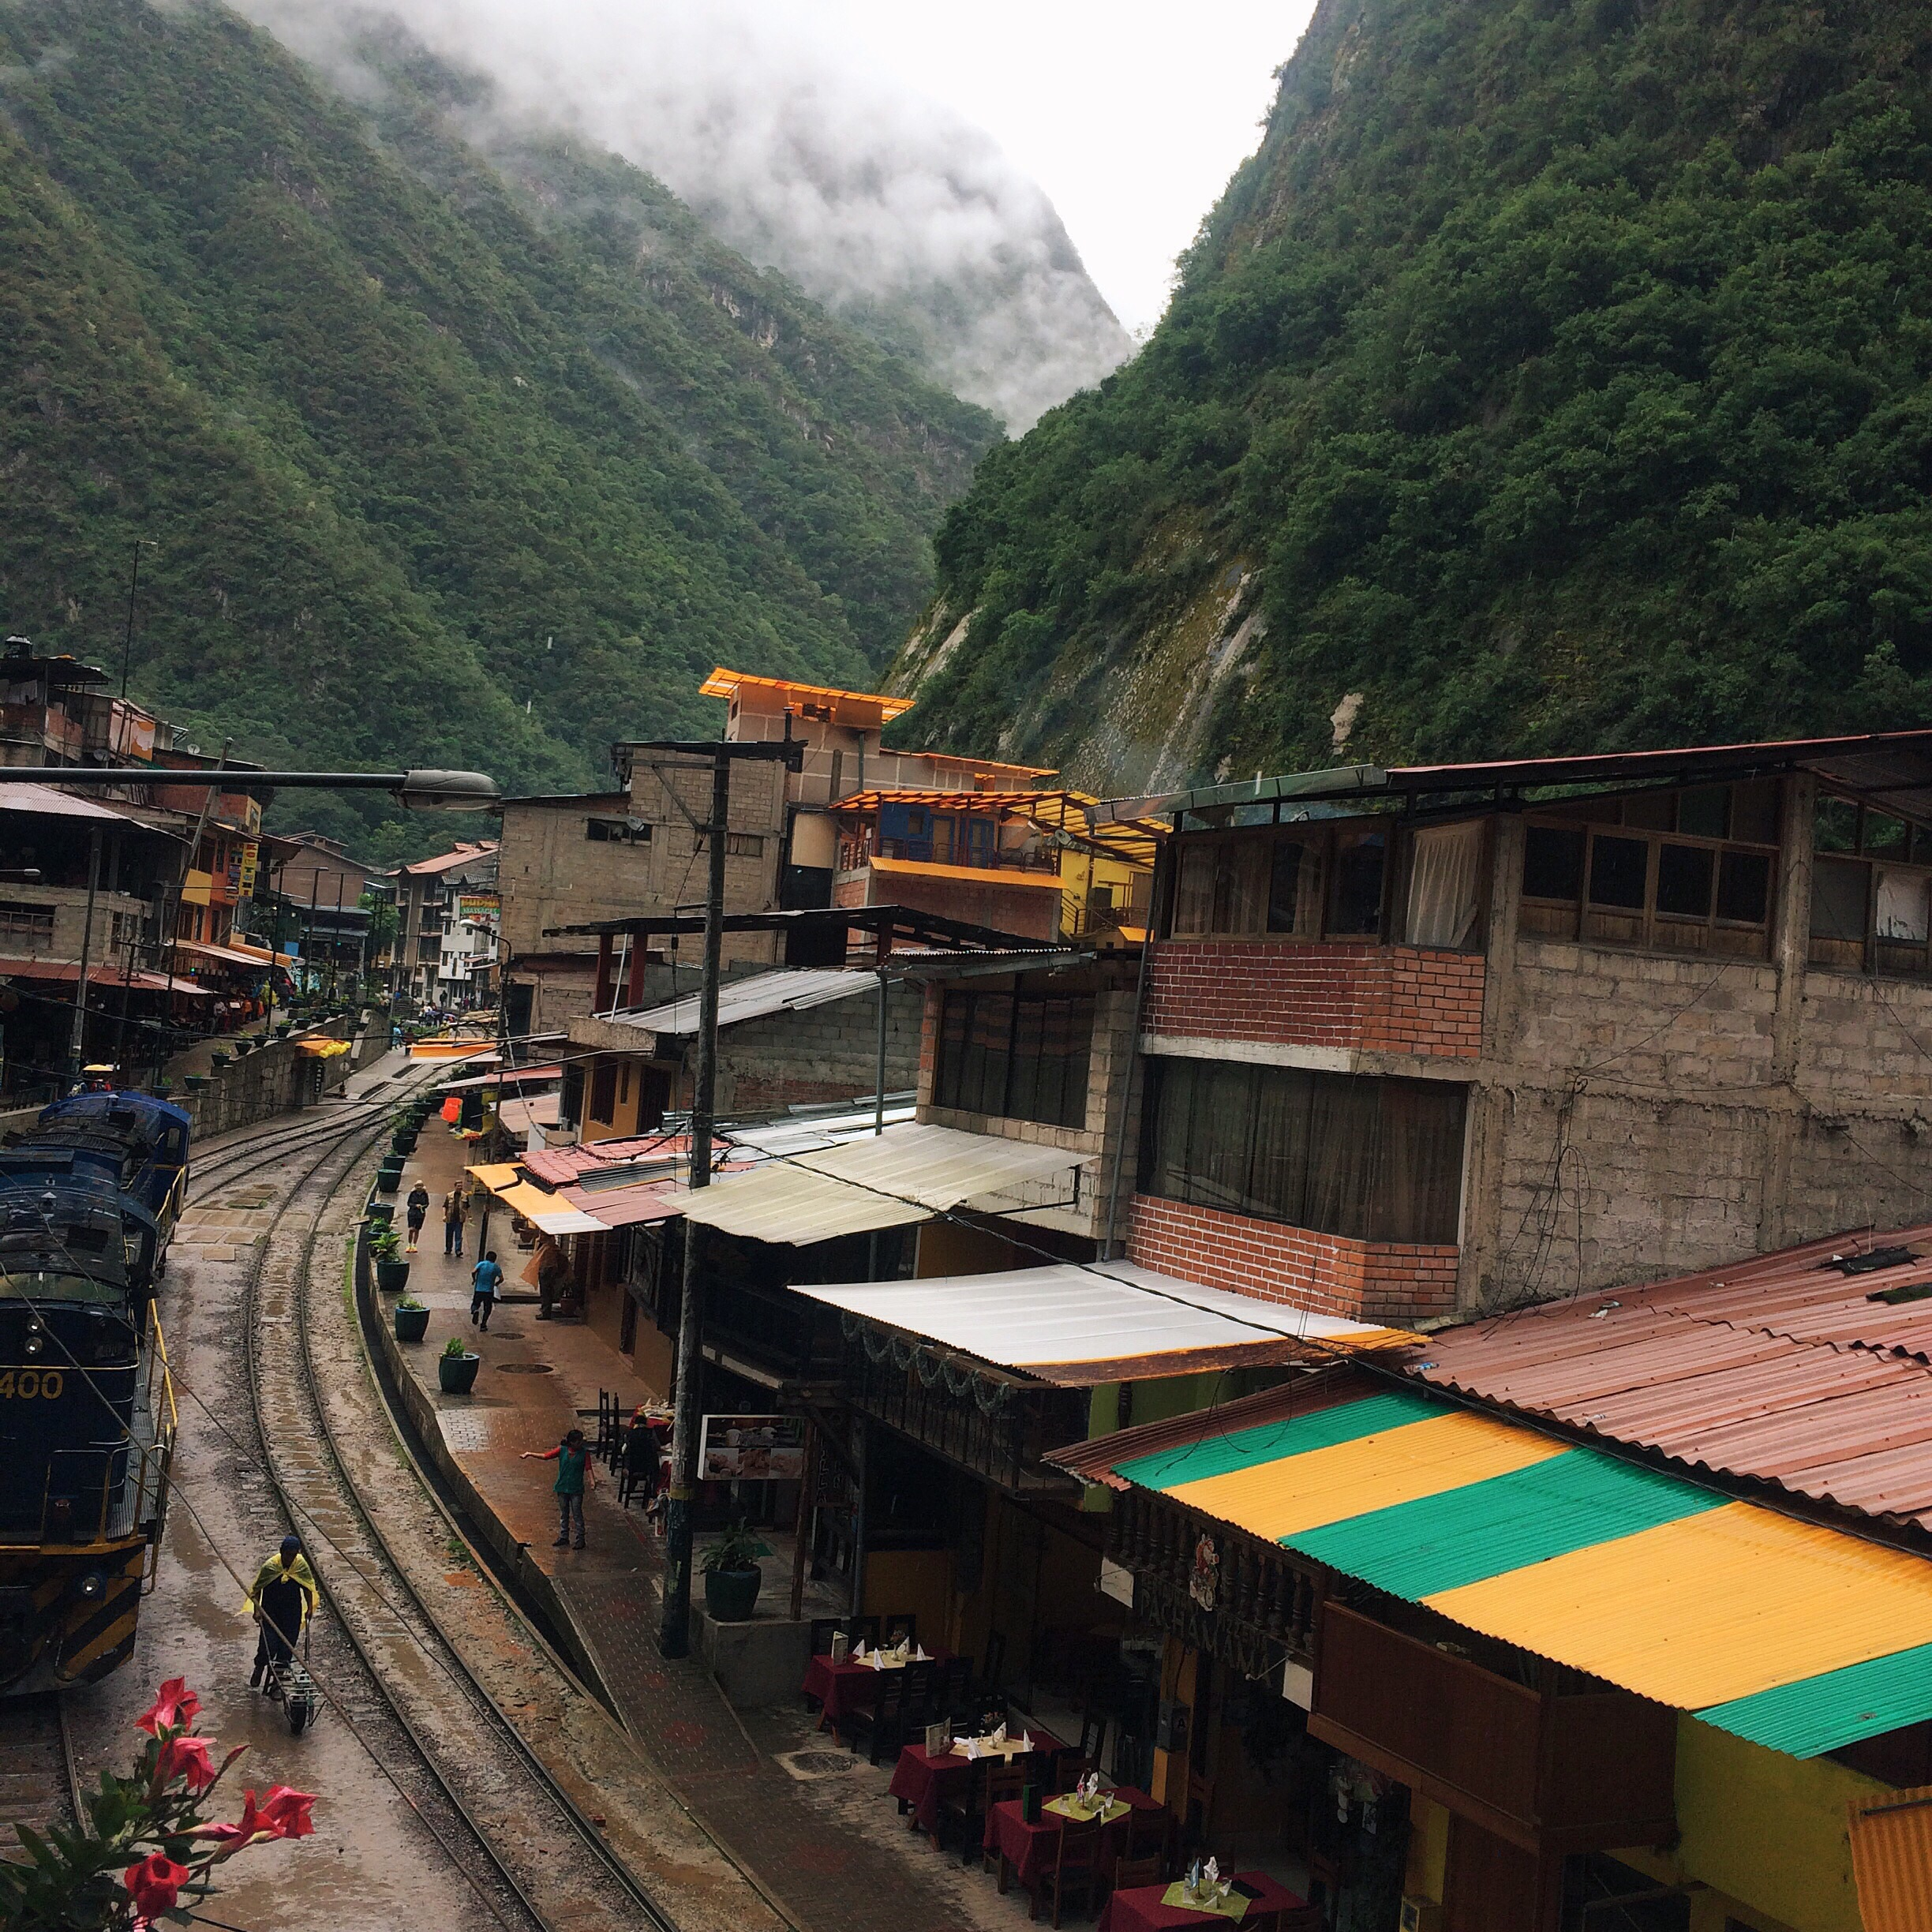 The view out of our hostel, where we began our hike in Aguas Calientes.